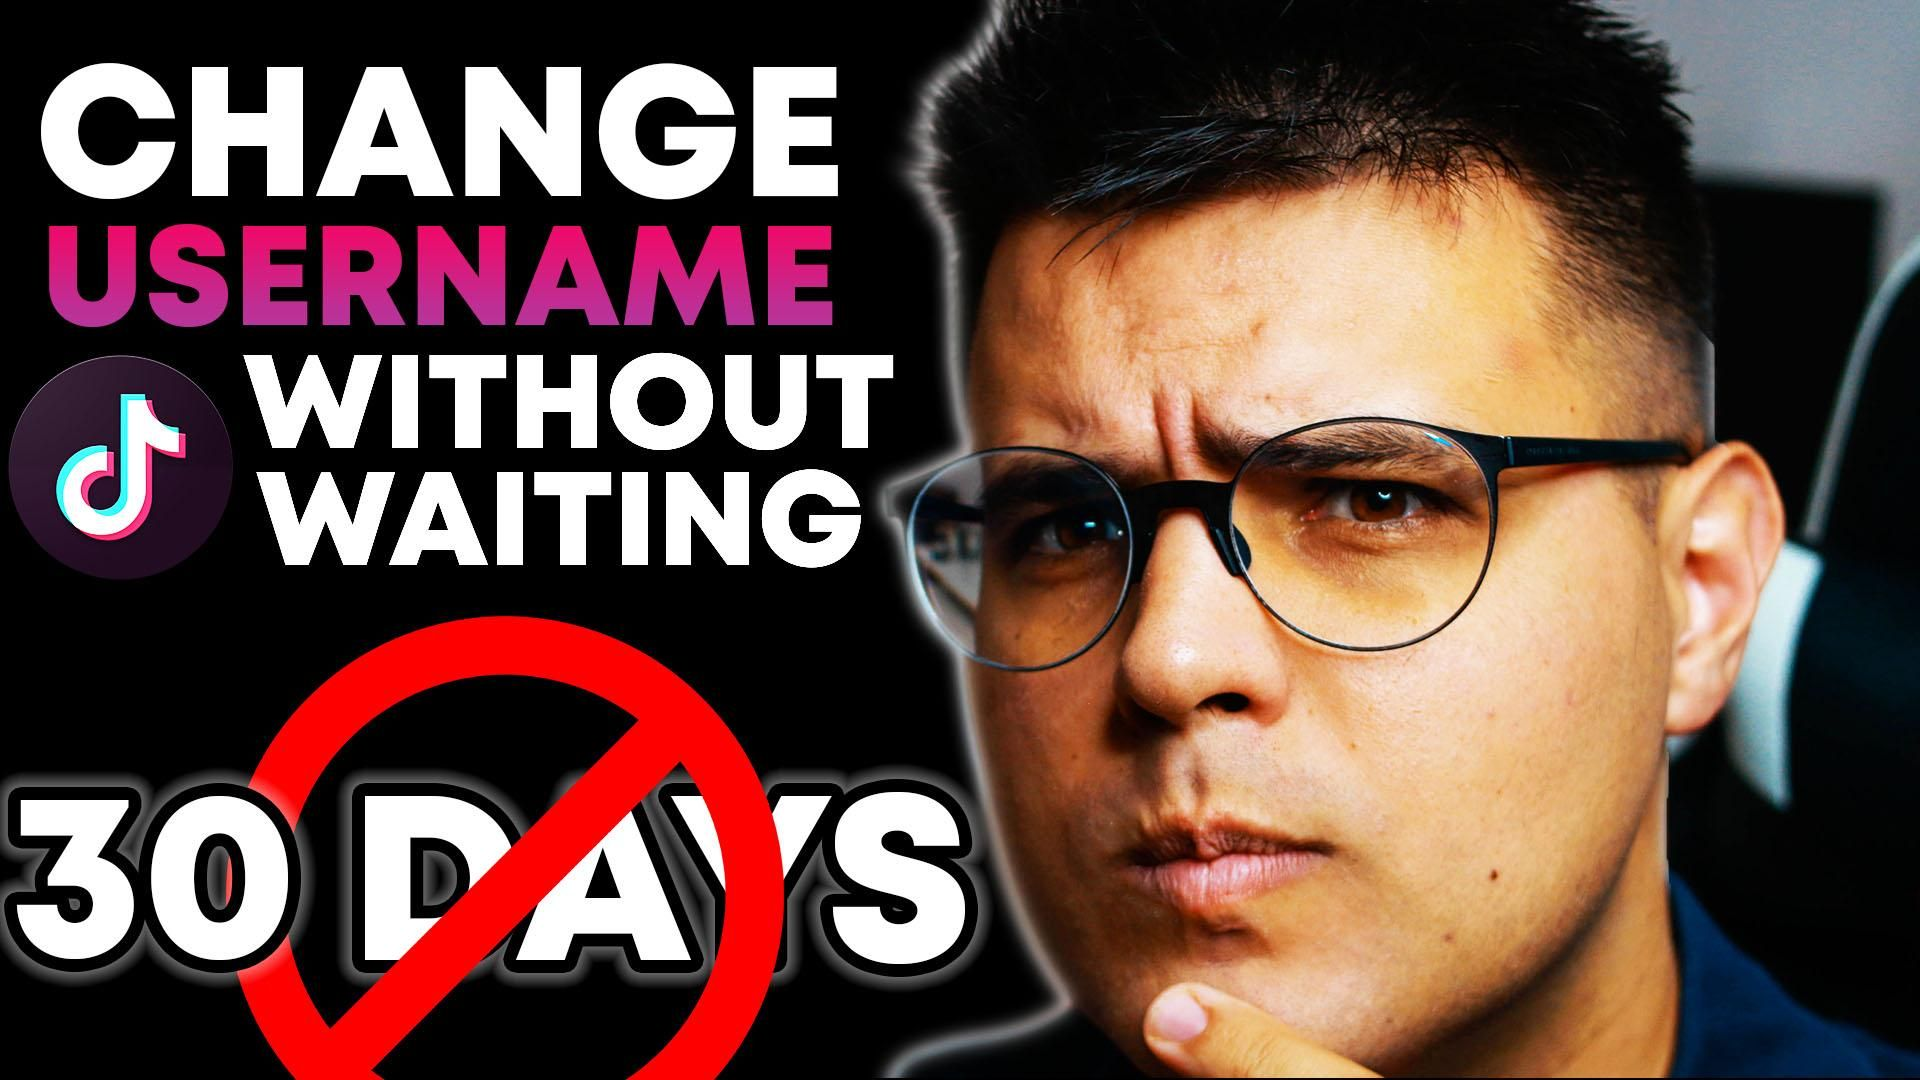 How To Change Tiktok Username Without Waiting 30 Days Change Username Tiktok In 2 Steps Video Social Media Waiting Change